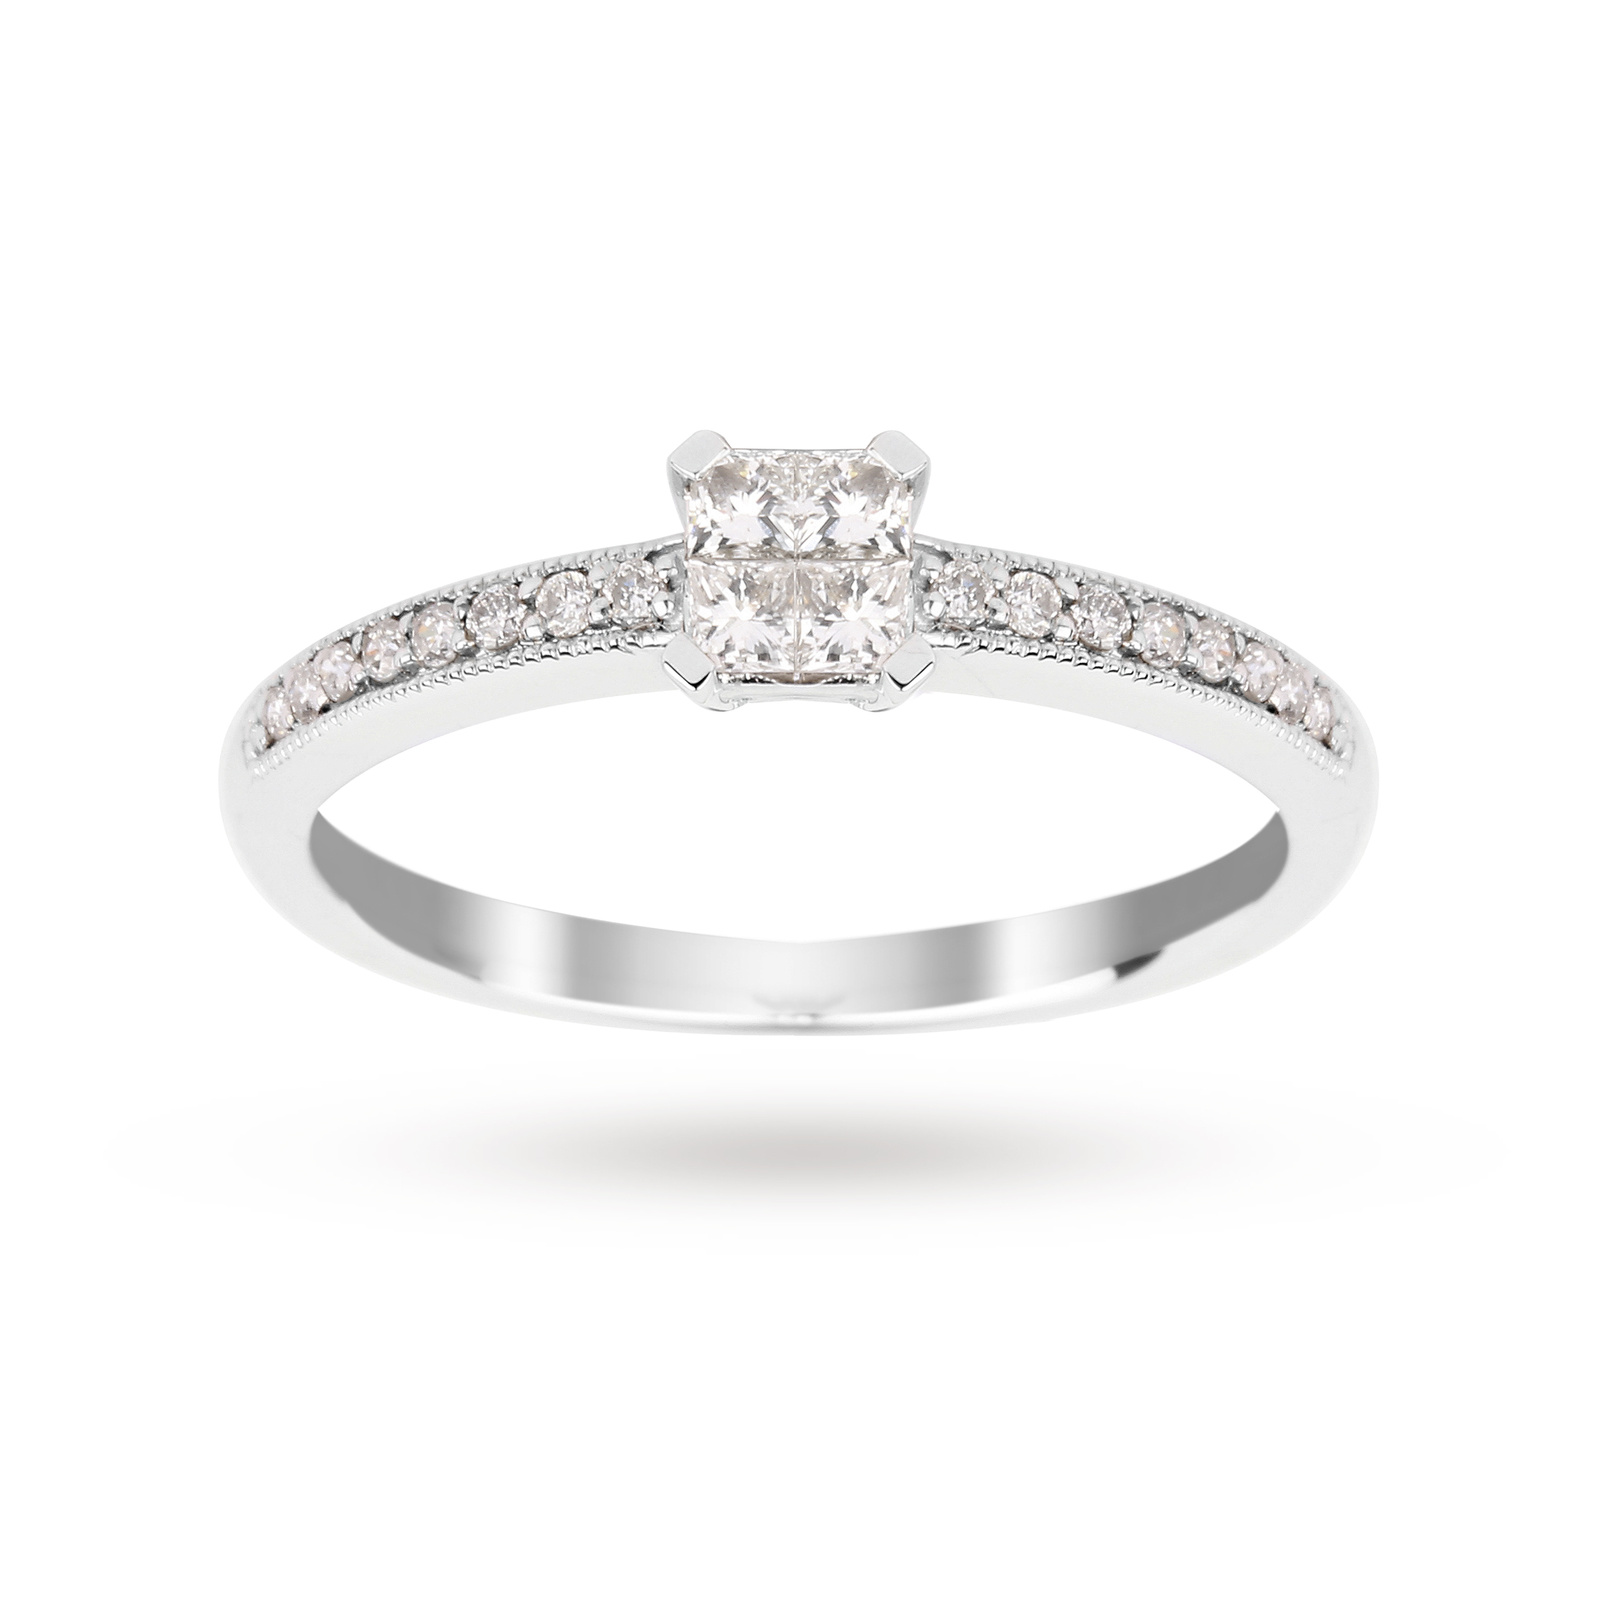 Princess Cut 0.30 Carat Total Weight Diamond Cluster Ring with Diamond Set Shoulders in 9 Carat Whit